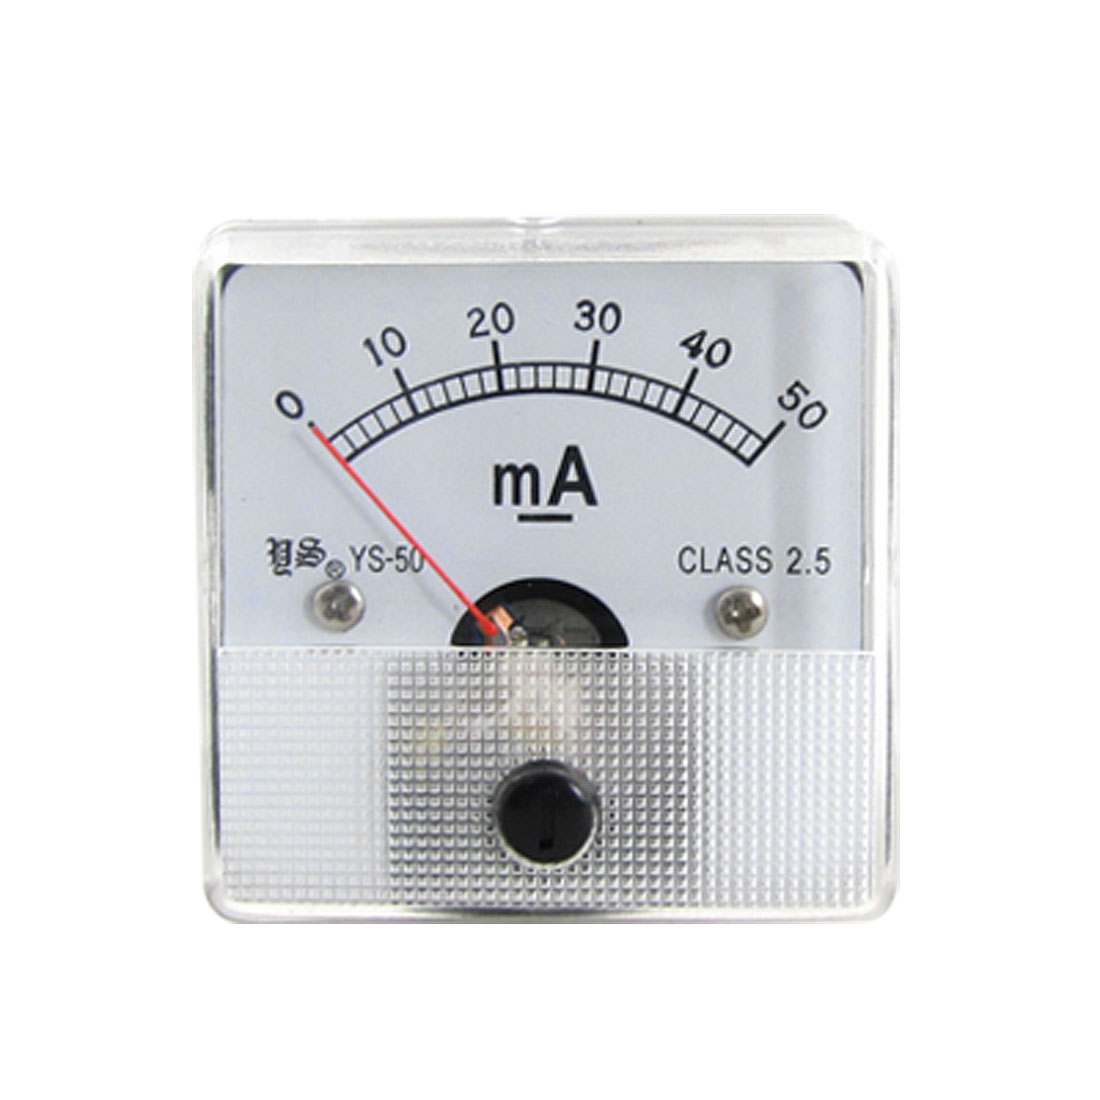 DC 0-50mA Current Measuring Class 2.5 Accuracy Panel Meter